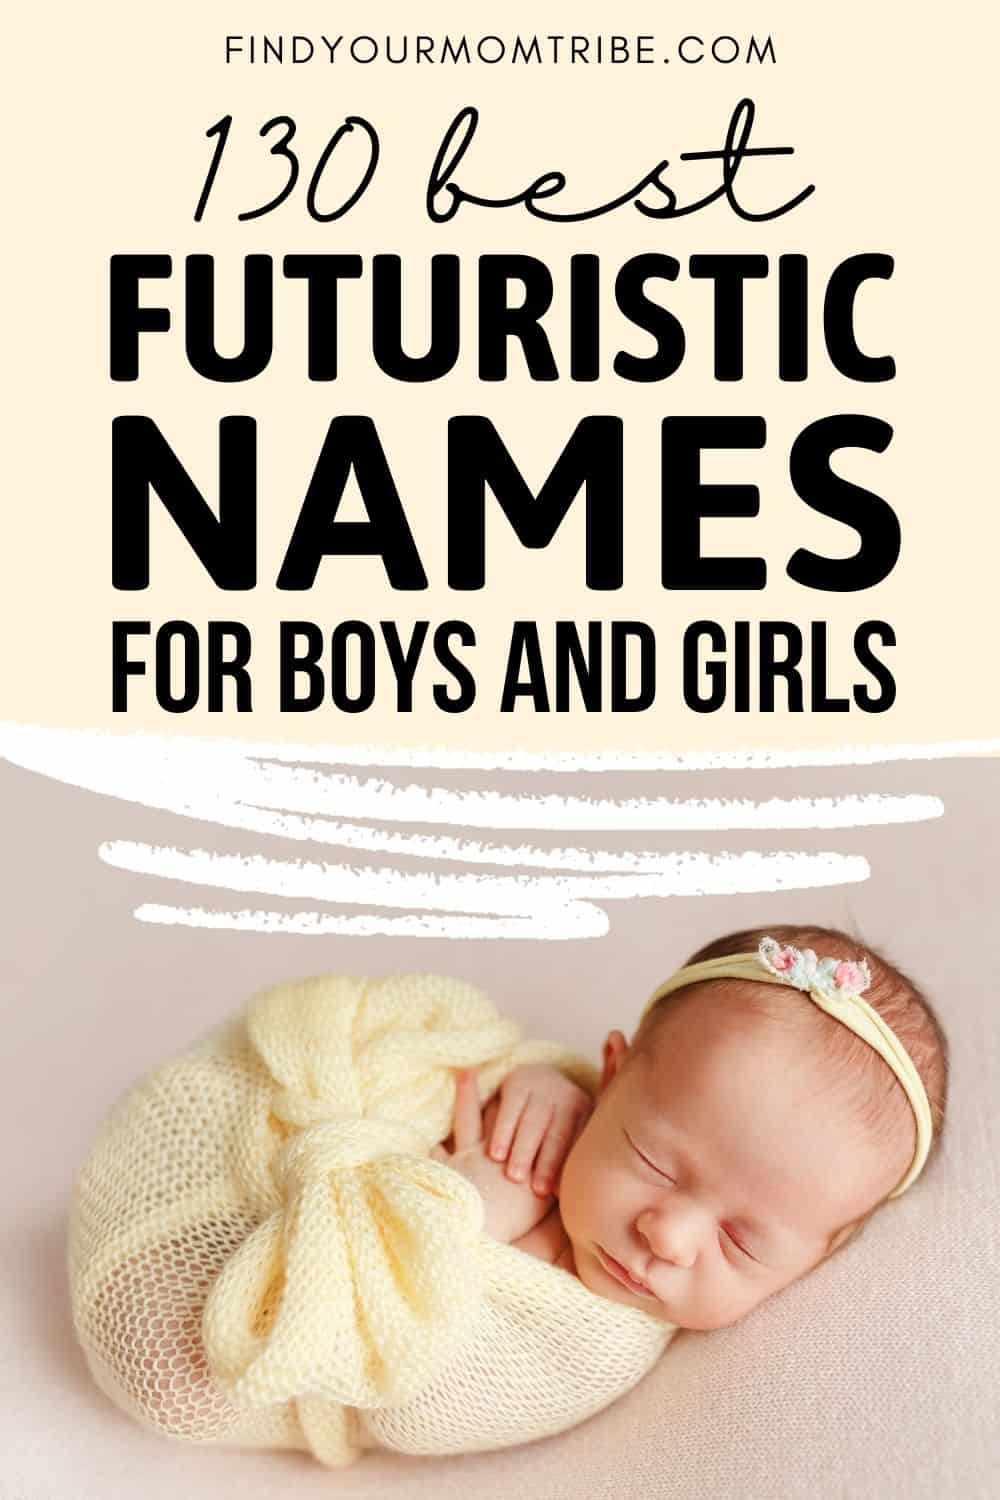 130 Best Futuristic Names For Boys And Girls